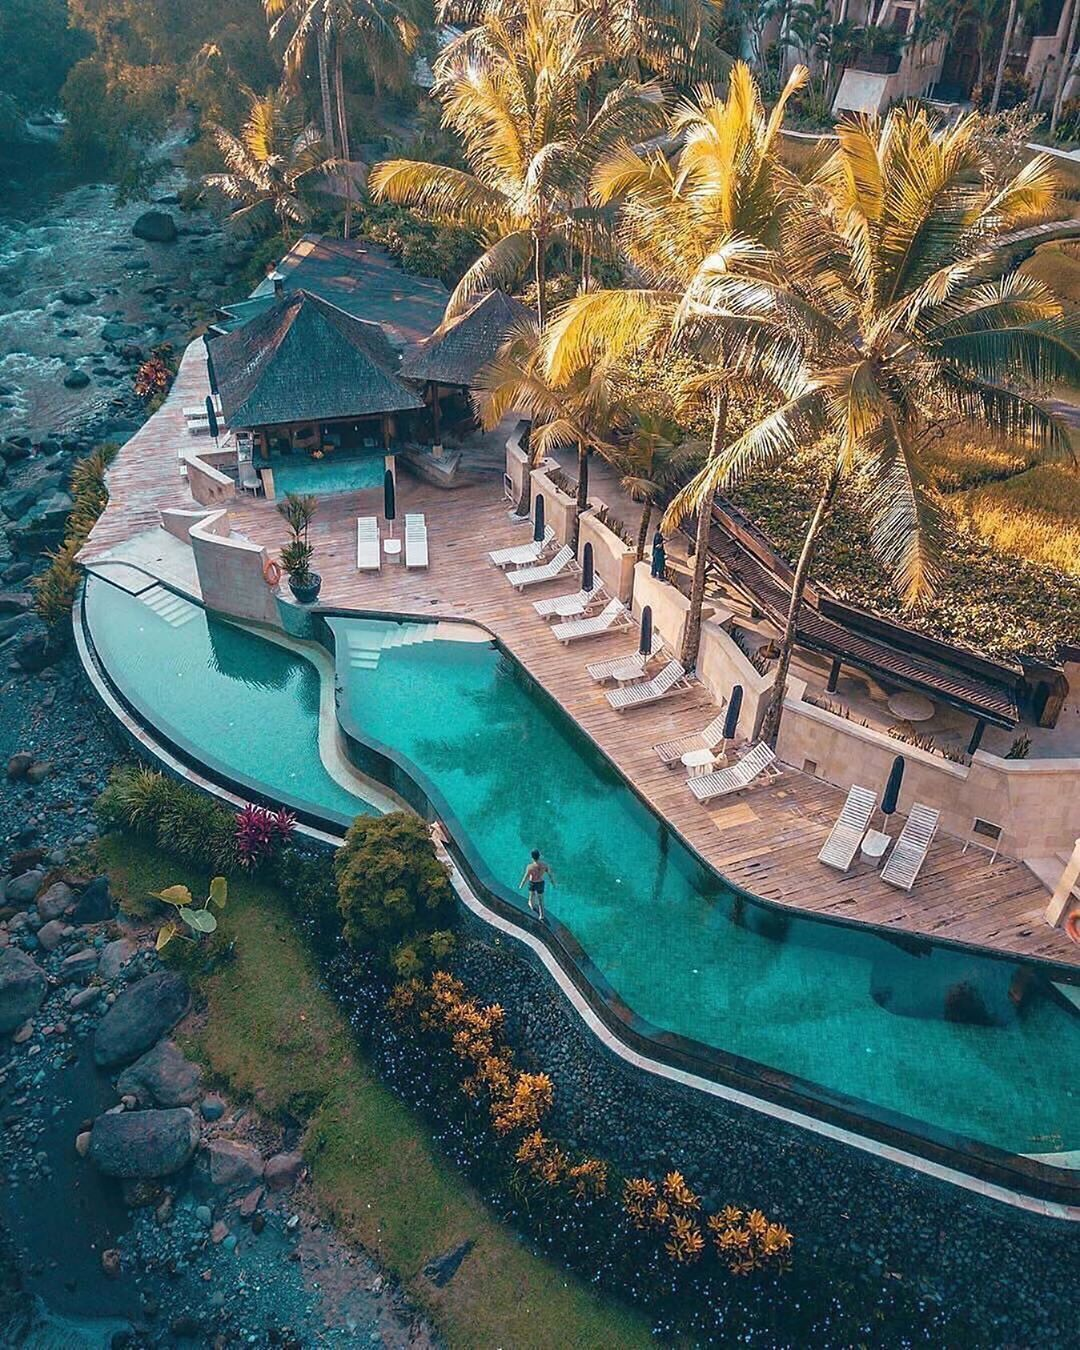 Top 10 Tourist Attraction To Visit In Indonesia Beautiful Hotels Hotel Pool Hotels And Resorts